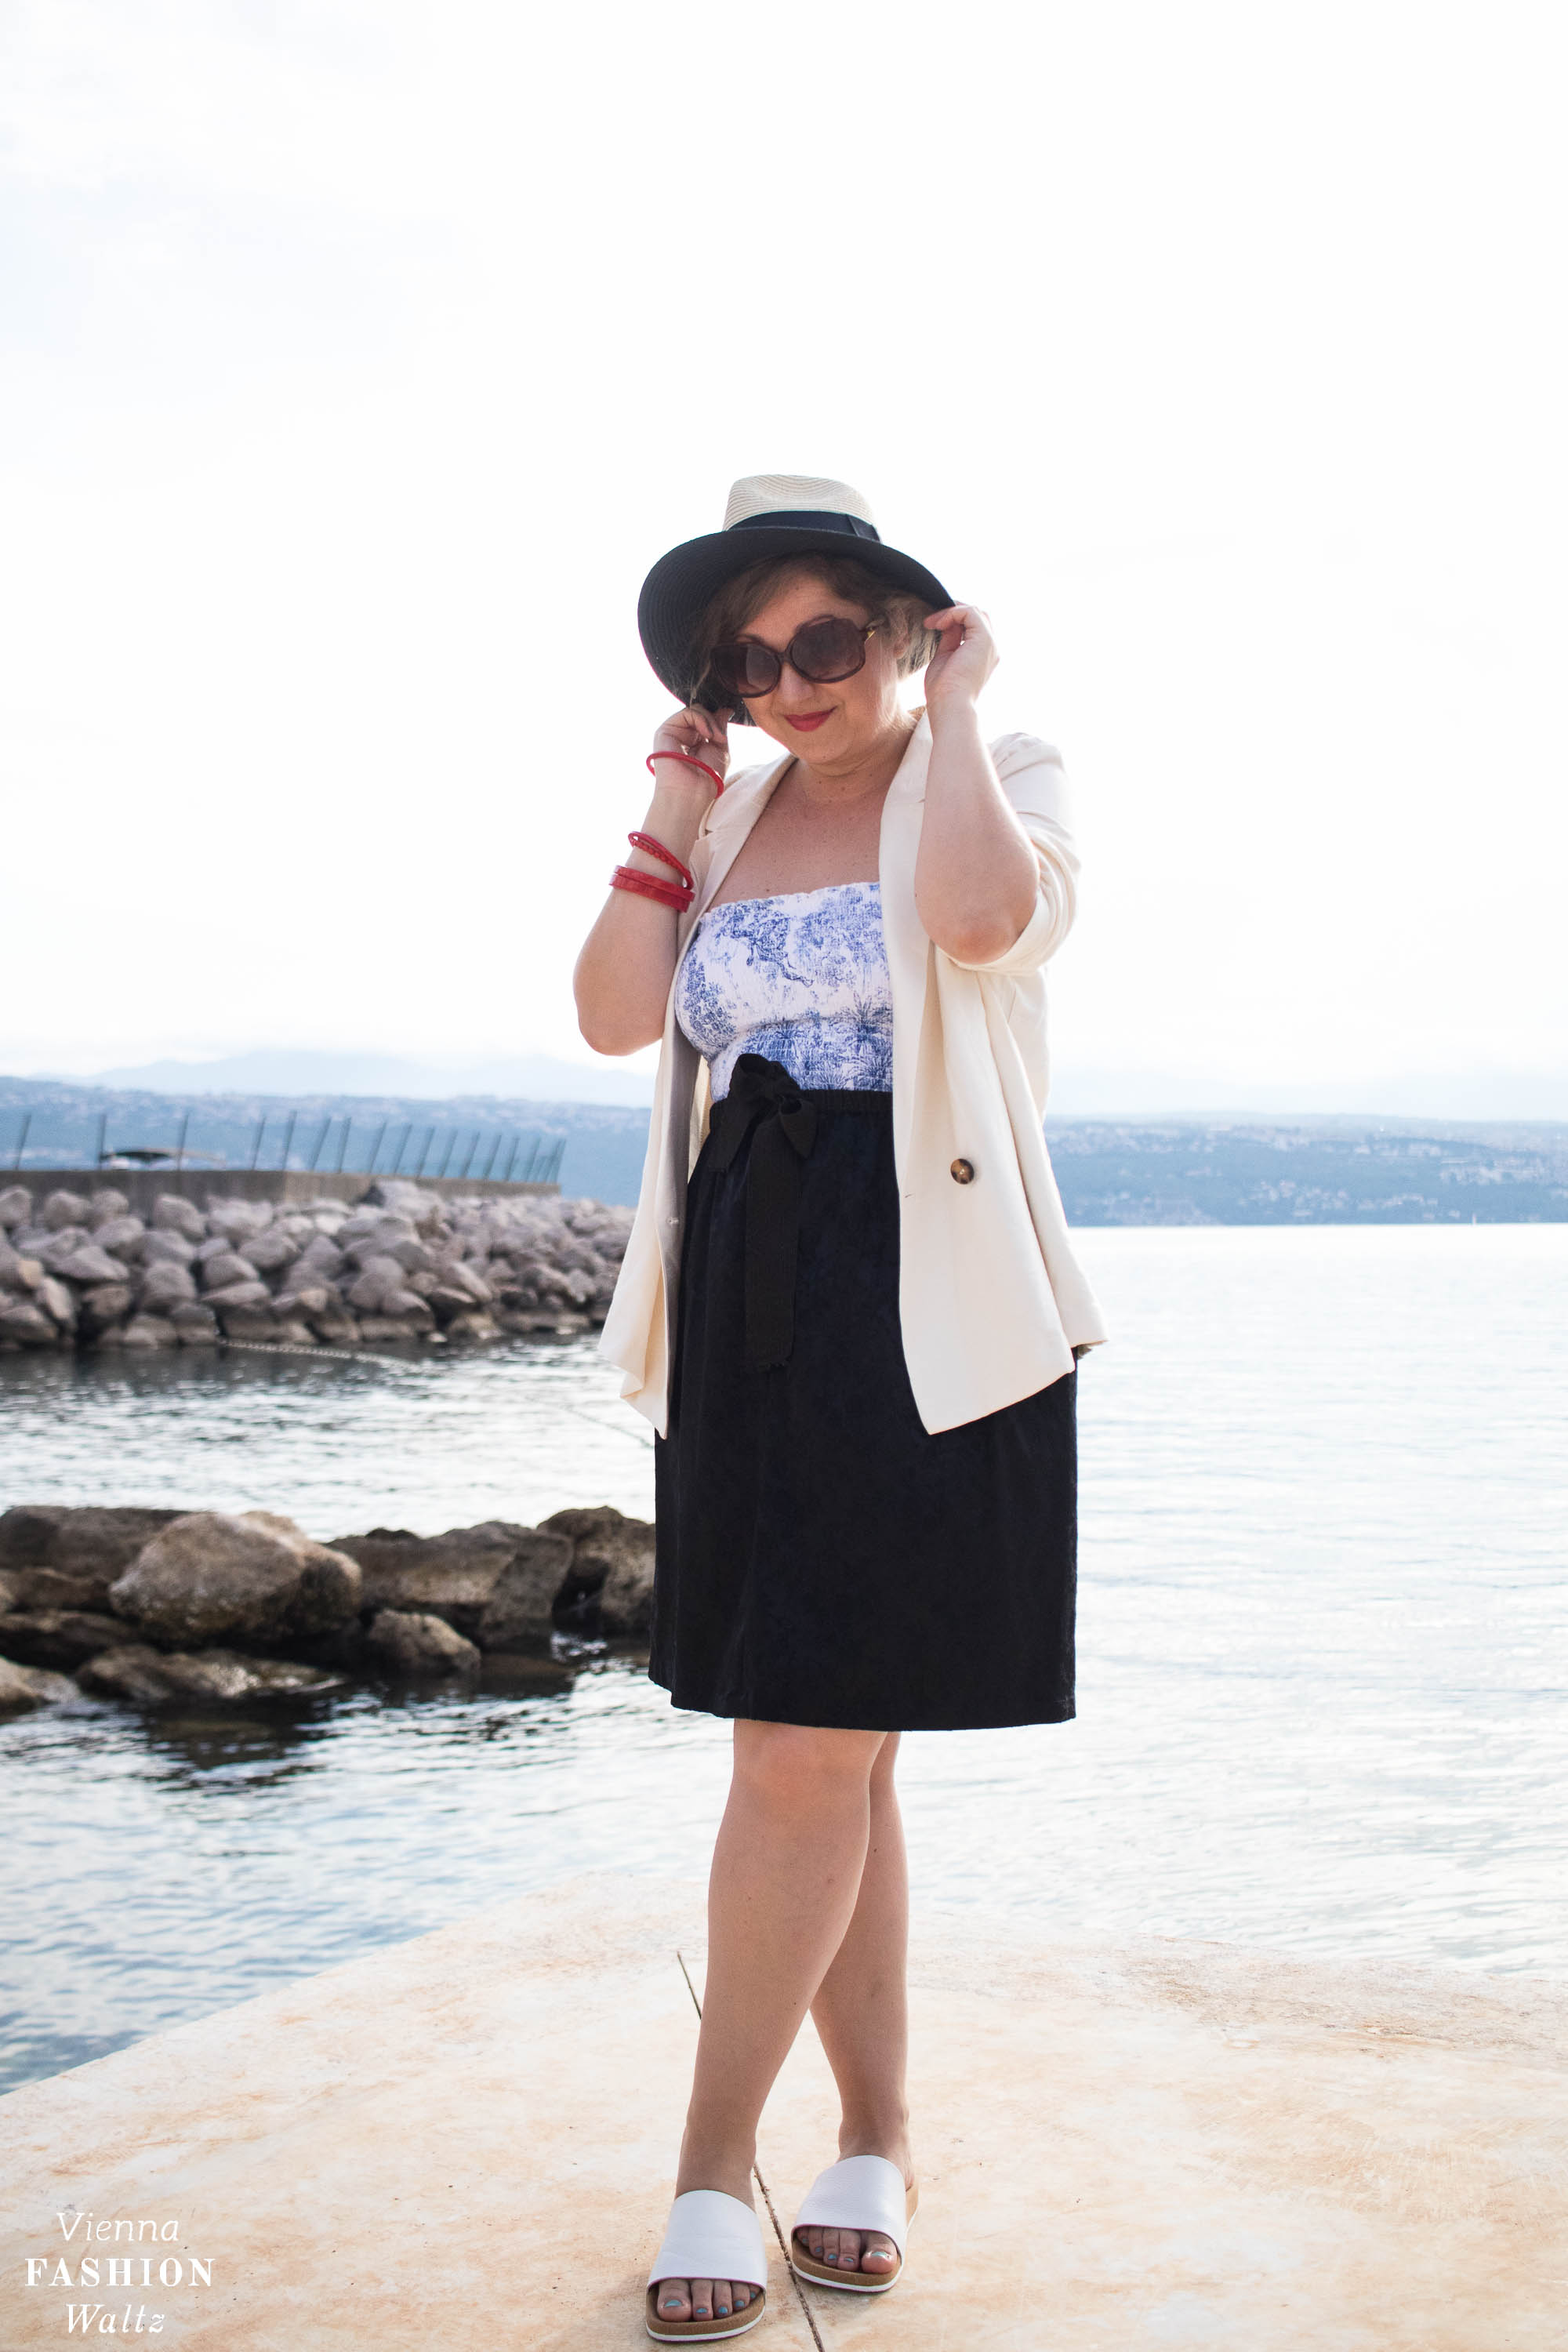 Sommer Trends, outfit, Strand, Meer,